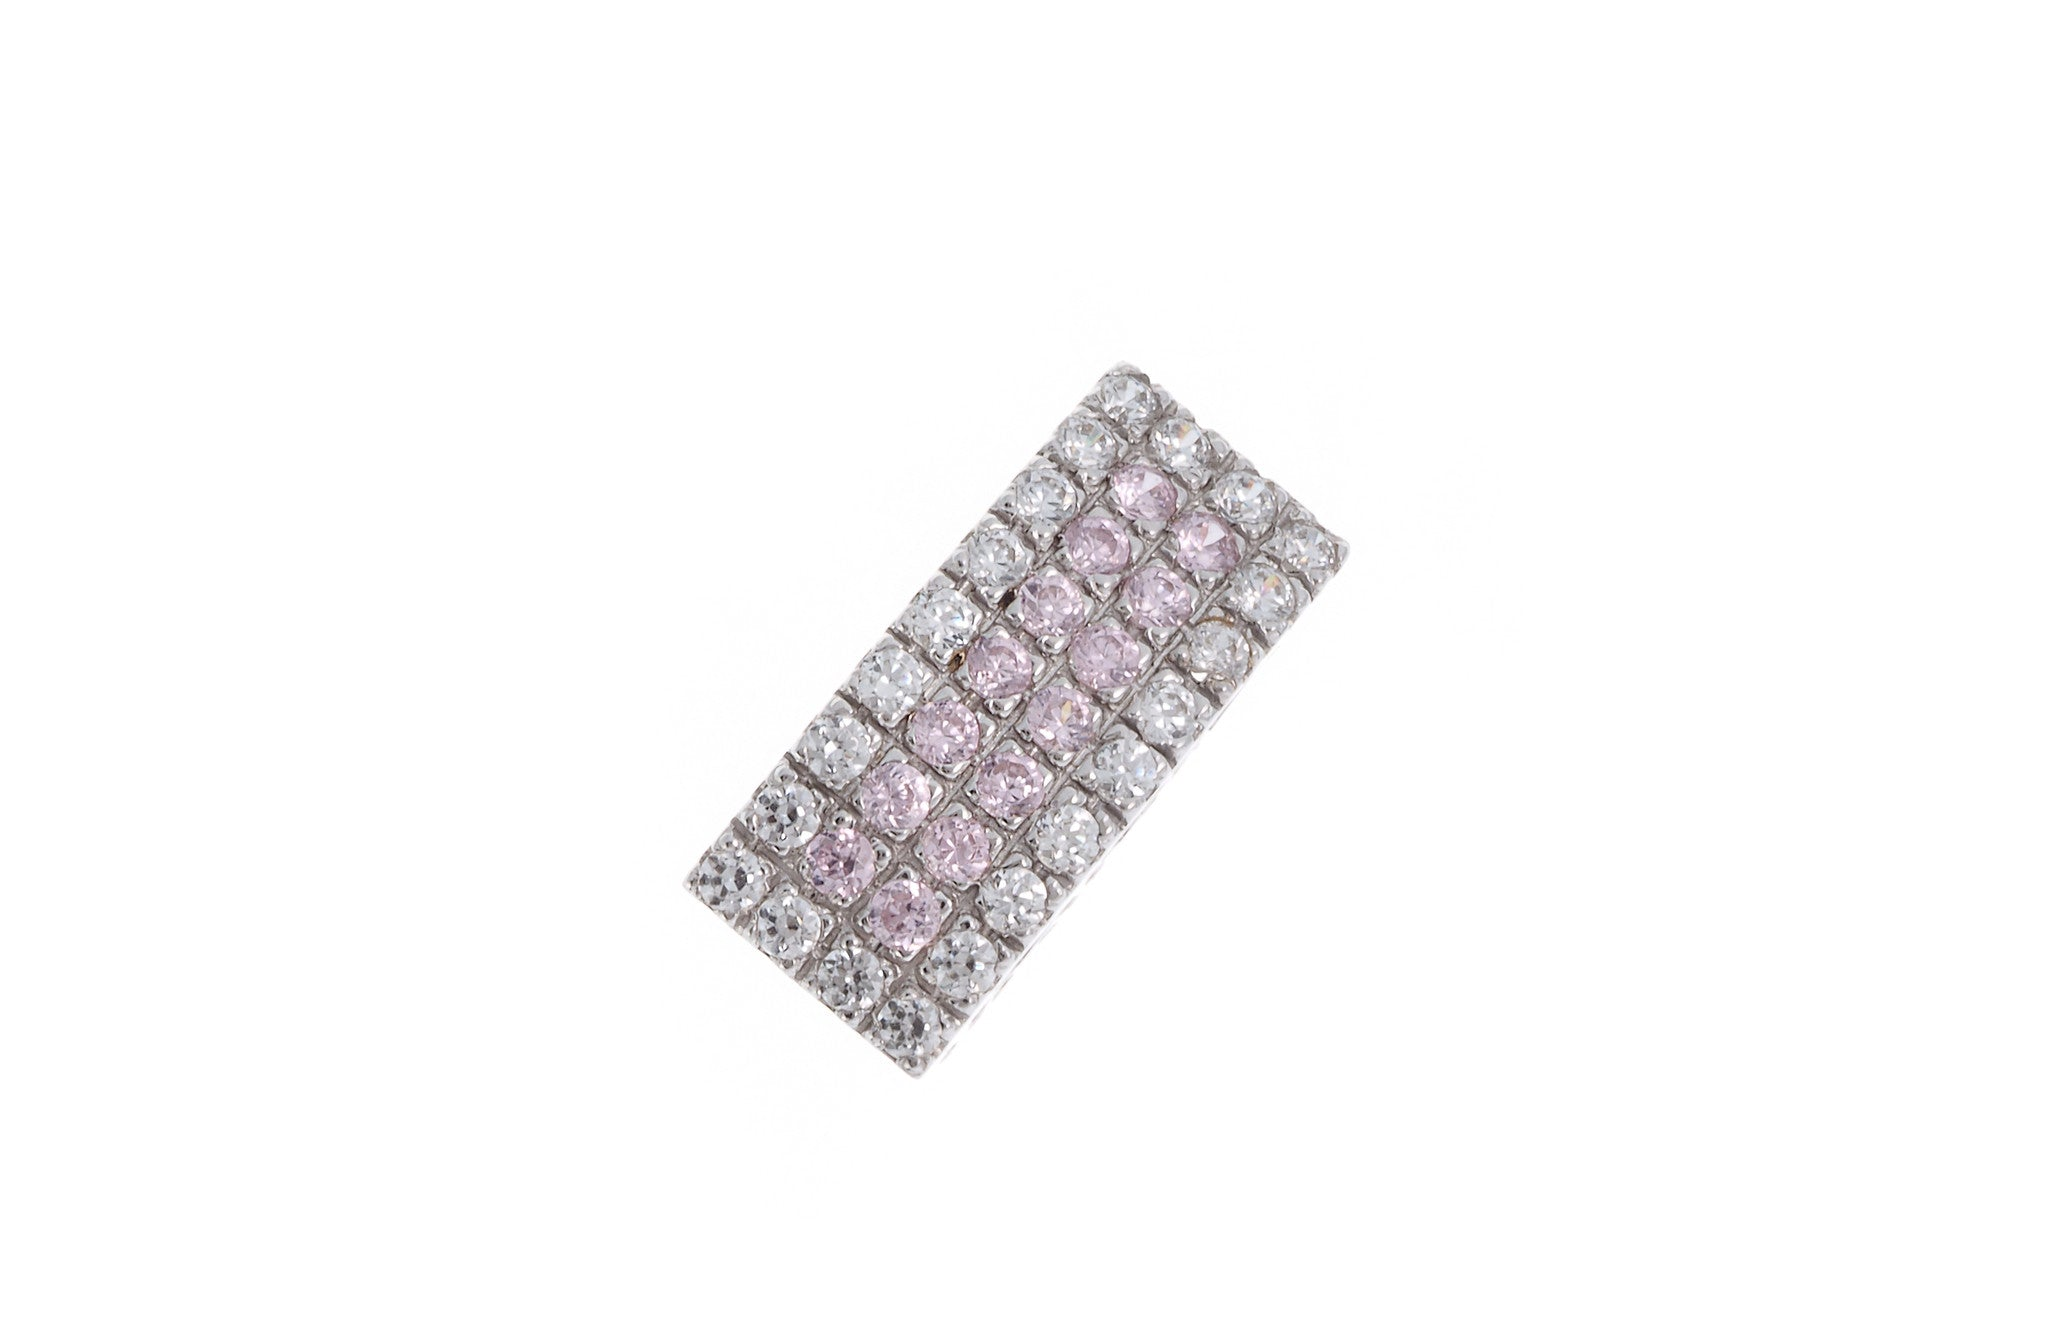 18ct White Gold Cubic Zirconia (Pink & White Stones) Pendant, Minar Jewellers - 1